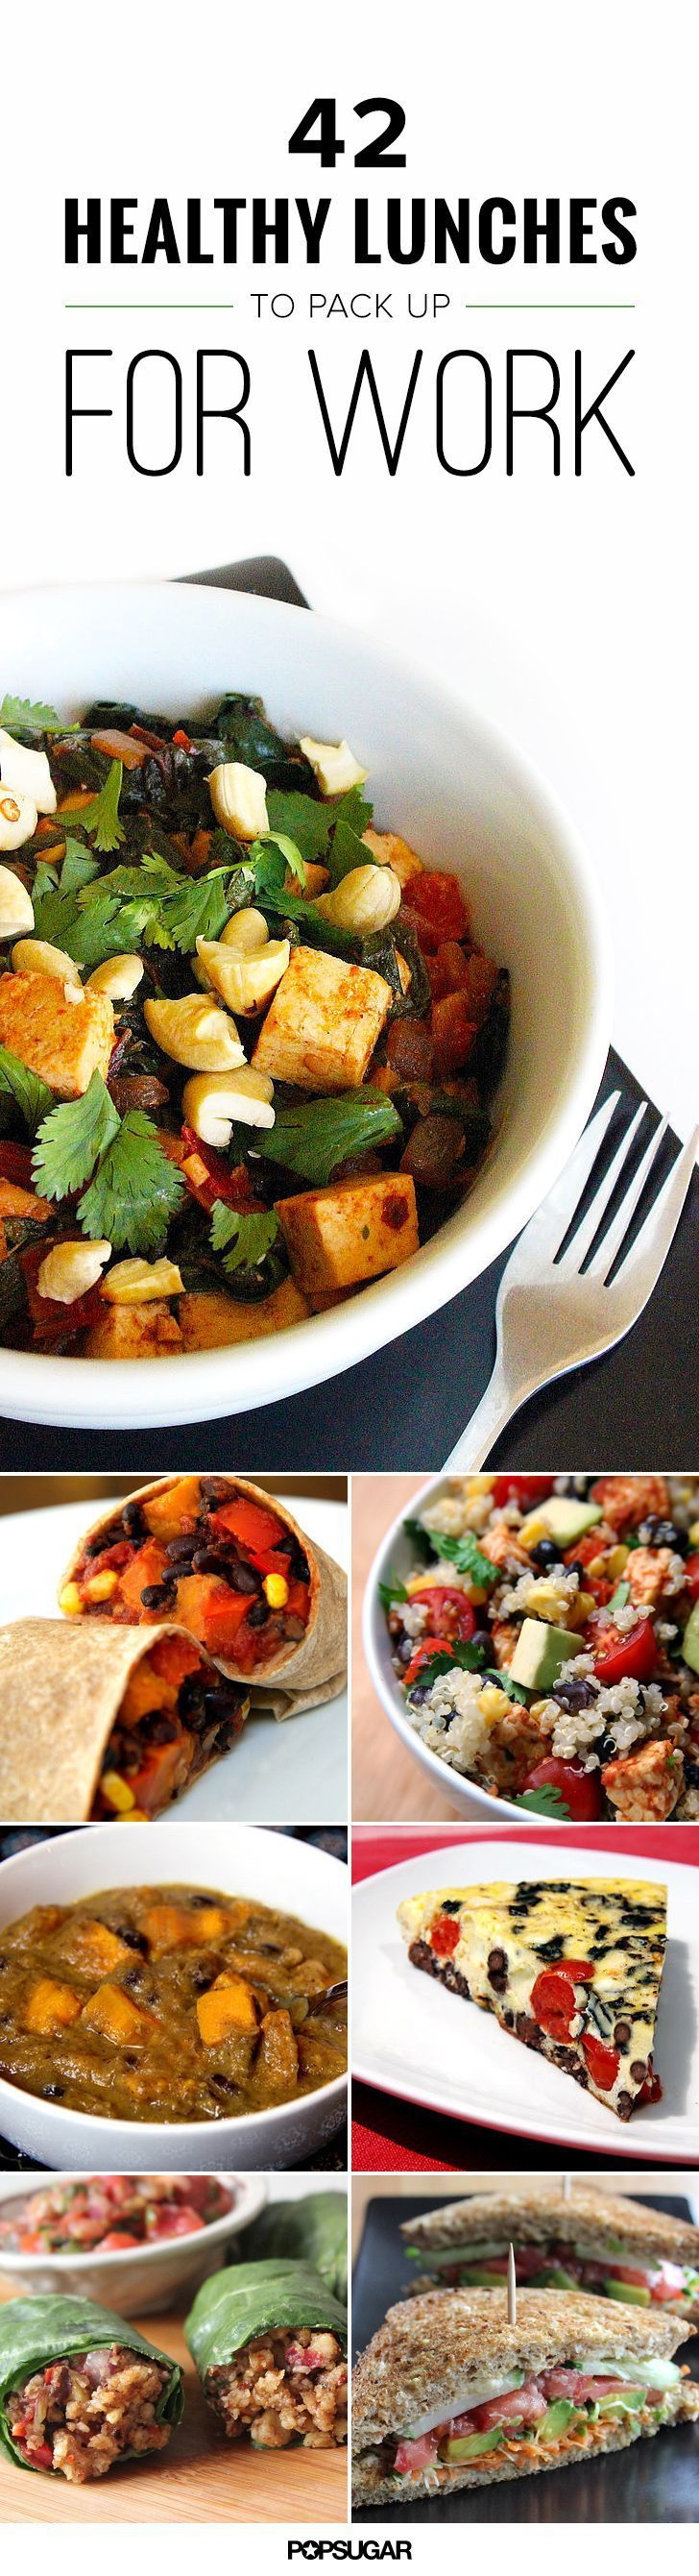 Regardless of your dietary limitations and preferences, (at least!) one of these healthy recipes will fit the bill and make its way into your lunchtime rotation.